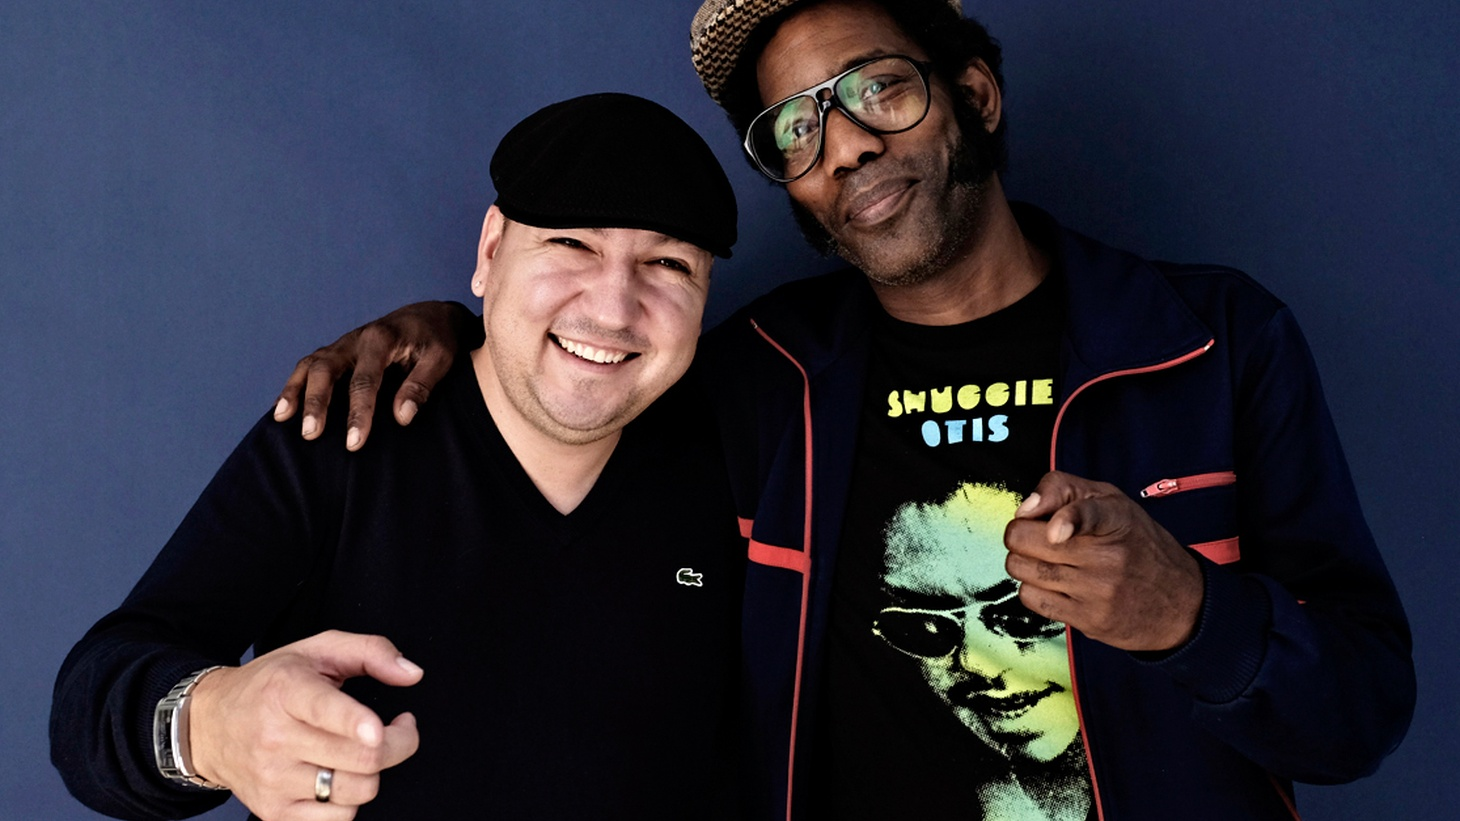 Lance Robertson is better known as DJ Lance Rock from the hugely popular children's show Yo Gabba Gabba! For his Guest DJ set, he shies away from the hits in favor of deeper album tracks and edgier material from Iggy Pop, the Isley Brothers, Skinny Puppy and more.